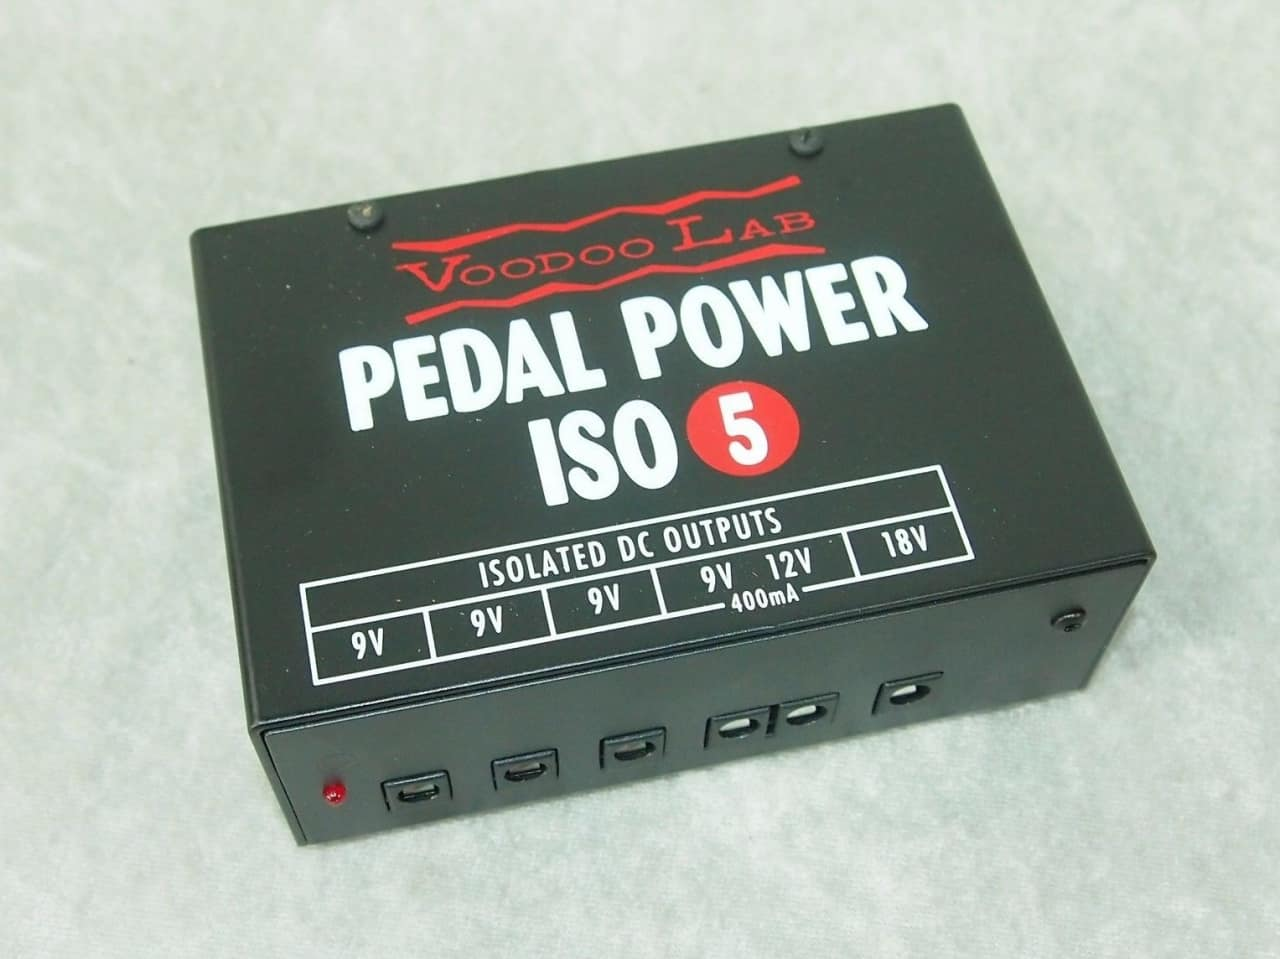 new voodoo lab pedal power iso 5 pedal power supply reverb. Black Bedroom Furniture Sets. Home Design Ideas